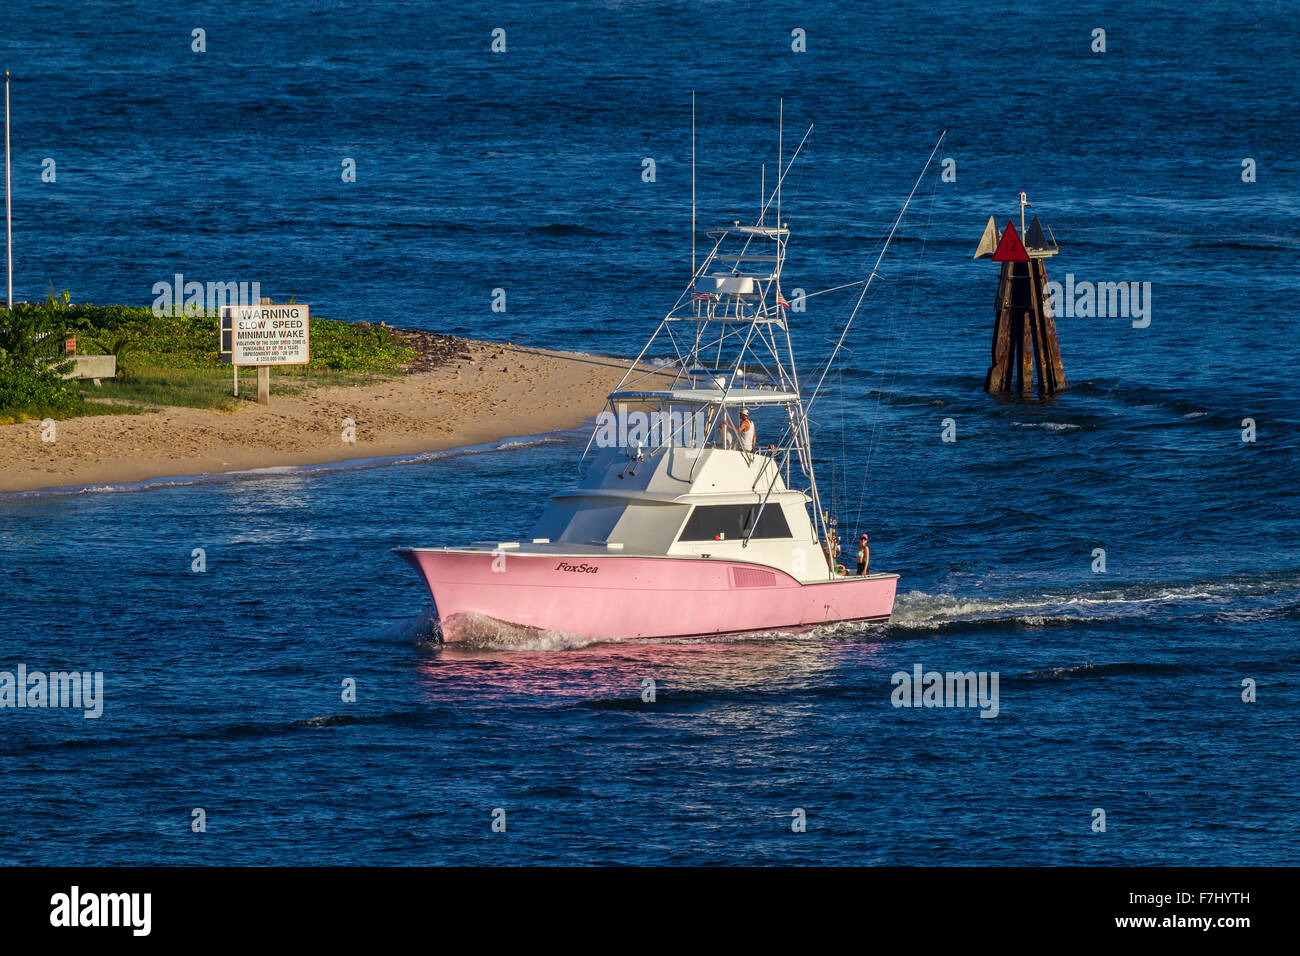 Pink fishing boat entering Port Everglades, Fort Lauderdale, Florida, U.S.A. Stock Photo